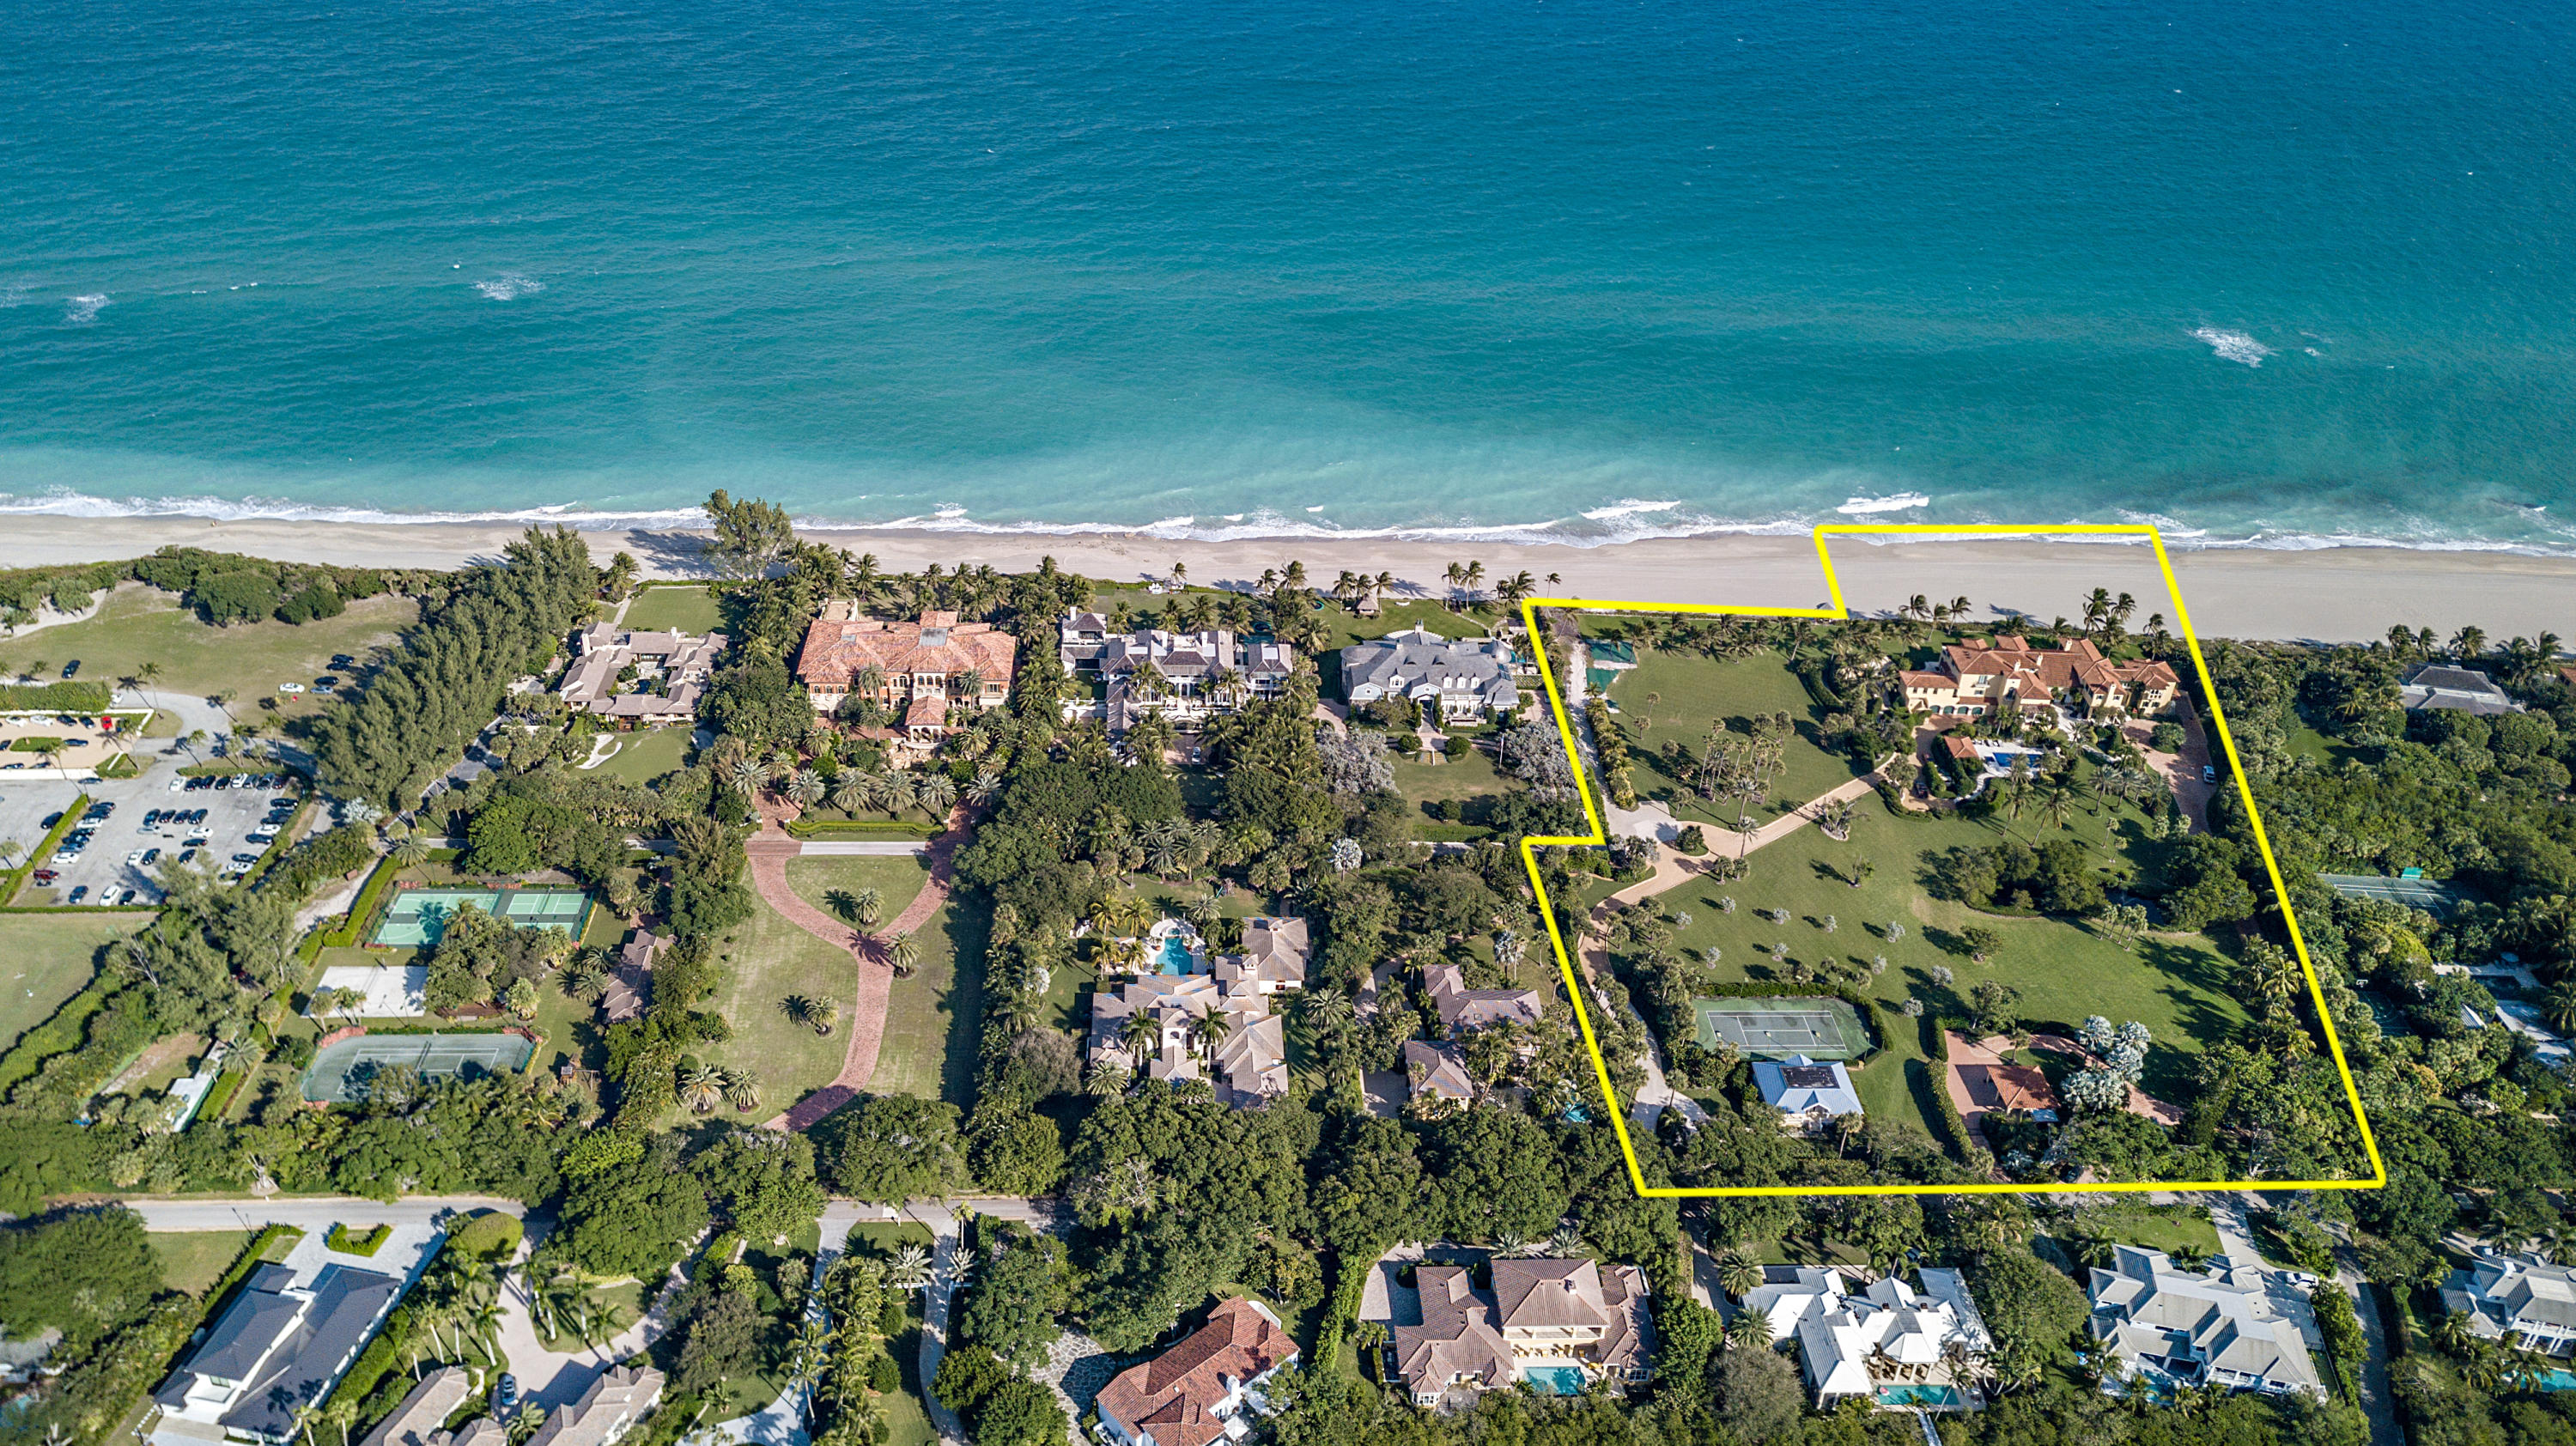 12525 Seminole Beach Road, North Palm Beach, Florida 33408, 7 Bedrooms Bedrooms, ,11 BathroomsBathrooms,Residential,for Sale,Seminole Beach,RX-10632970, , , ,for Sale